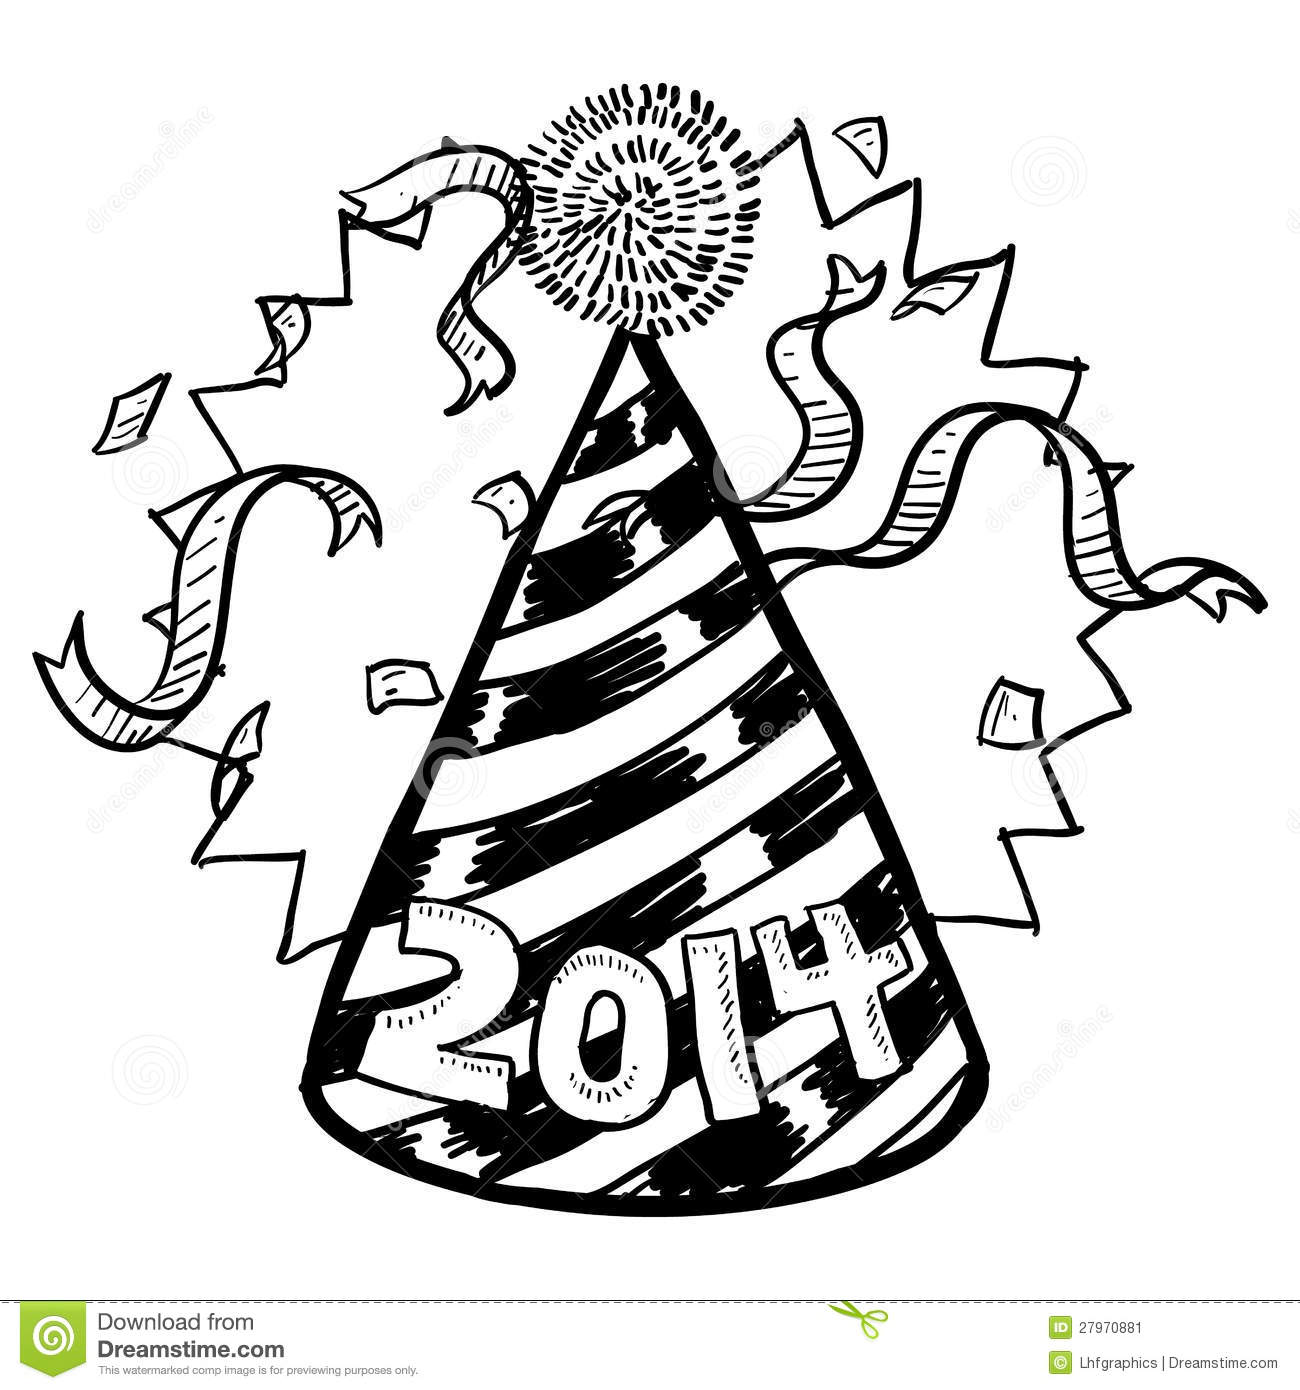 New Year's 2014 Party Hat Sketch Stock Vector